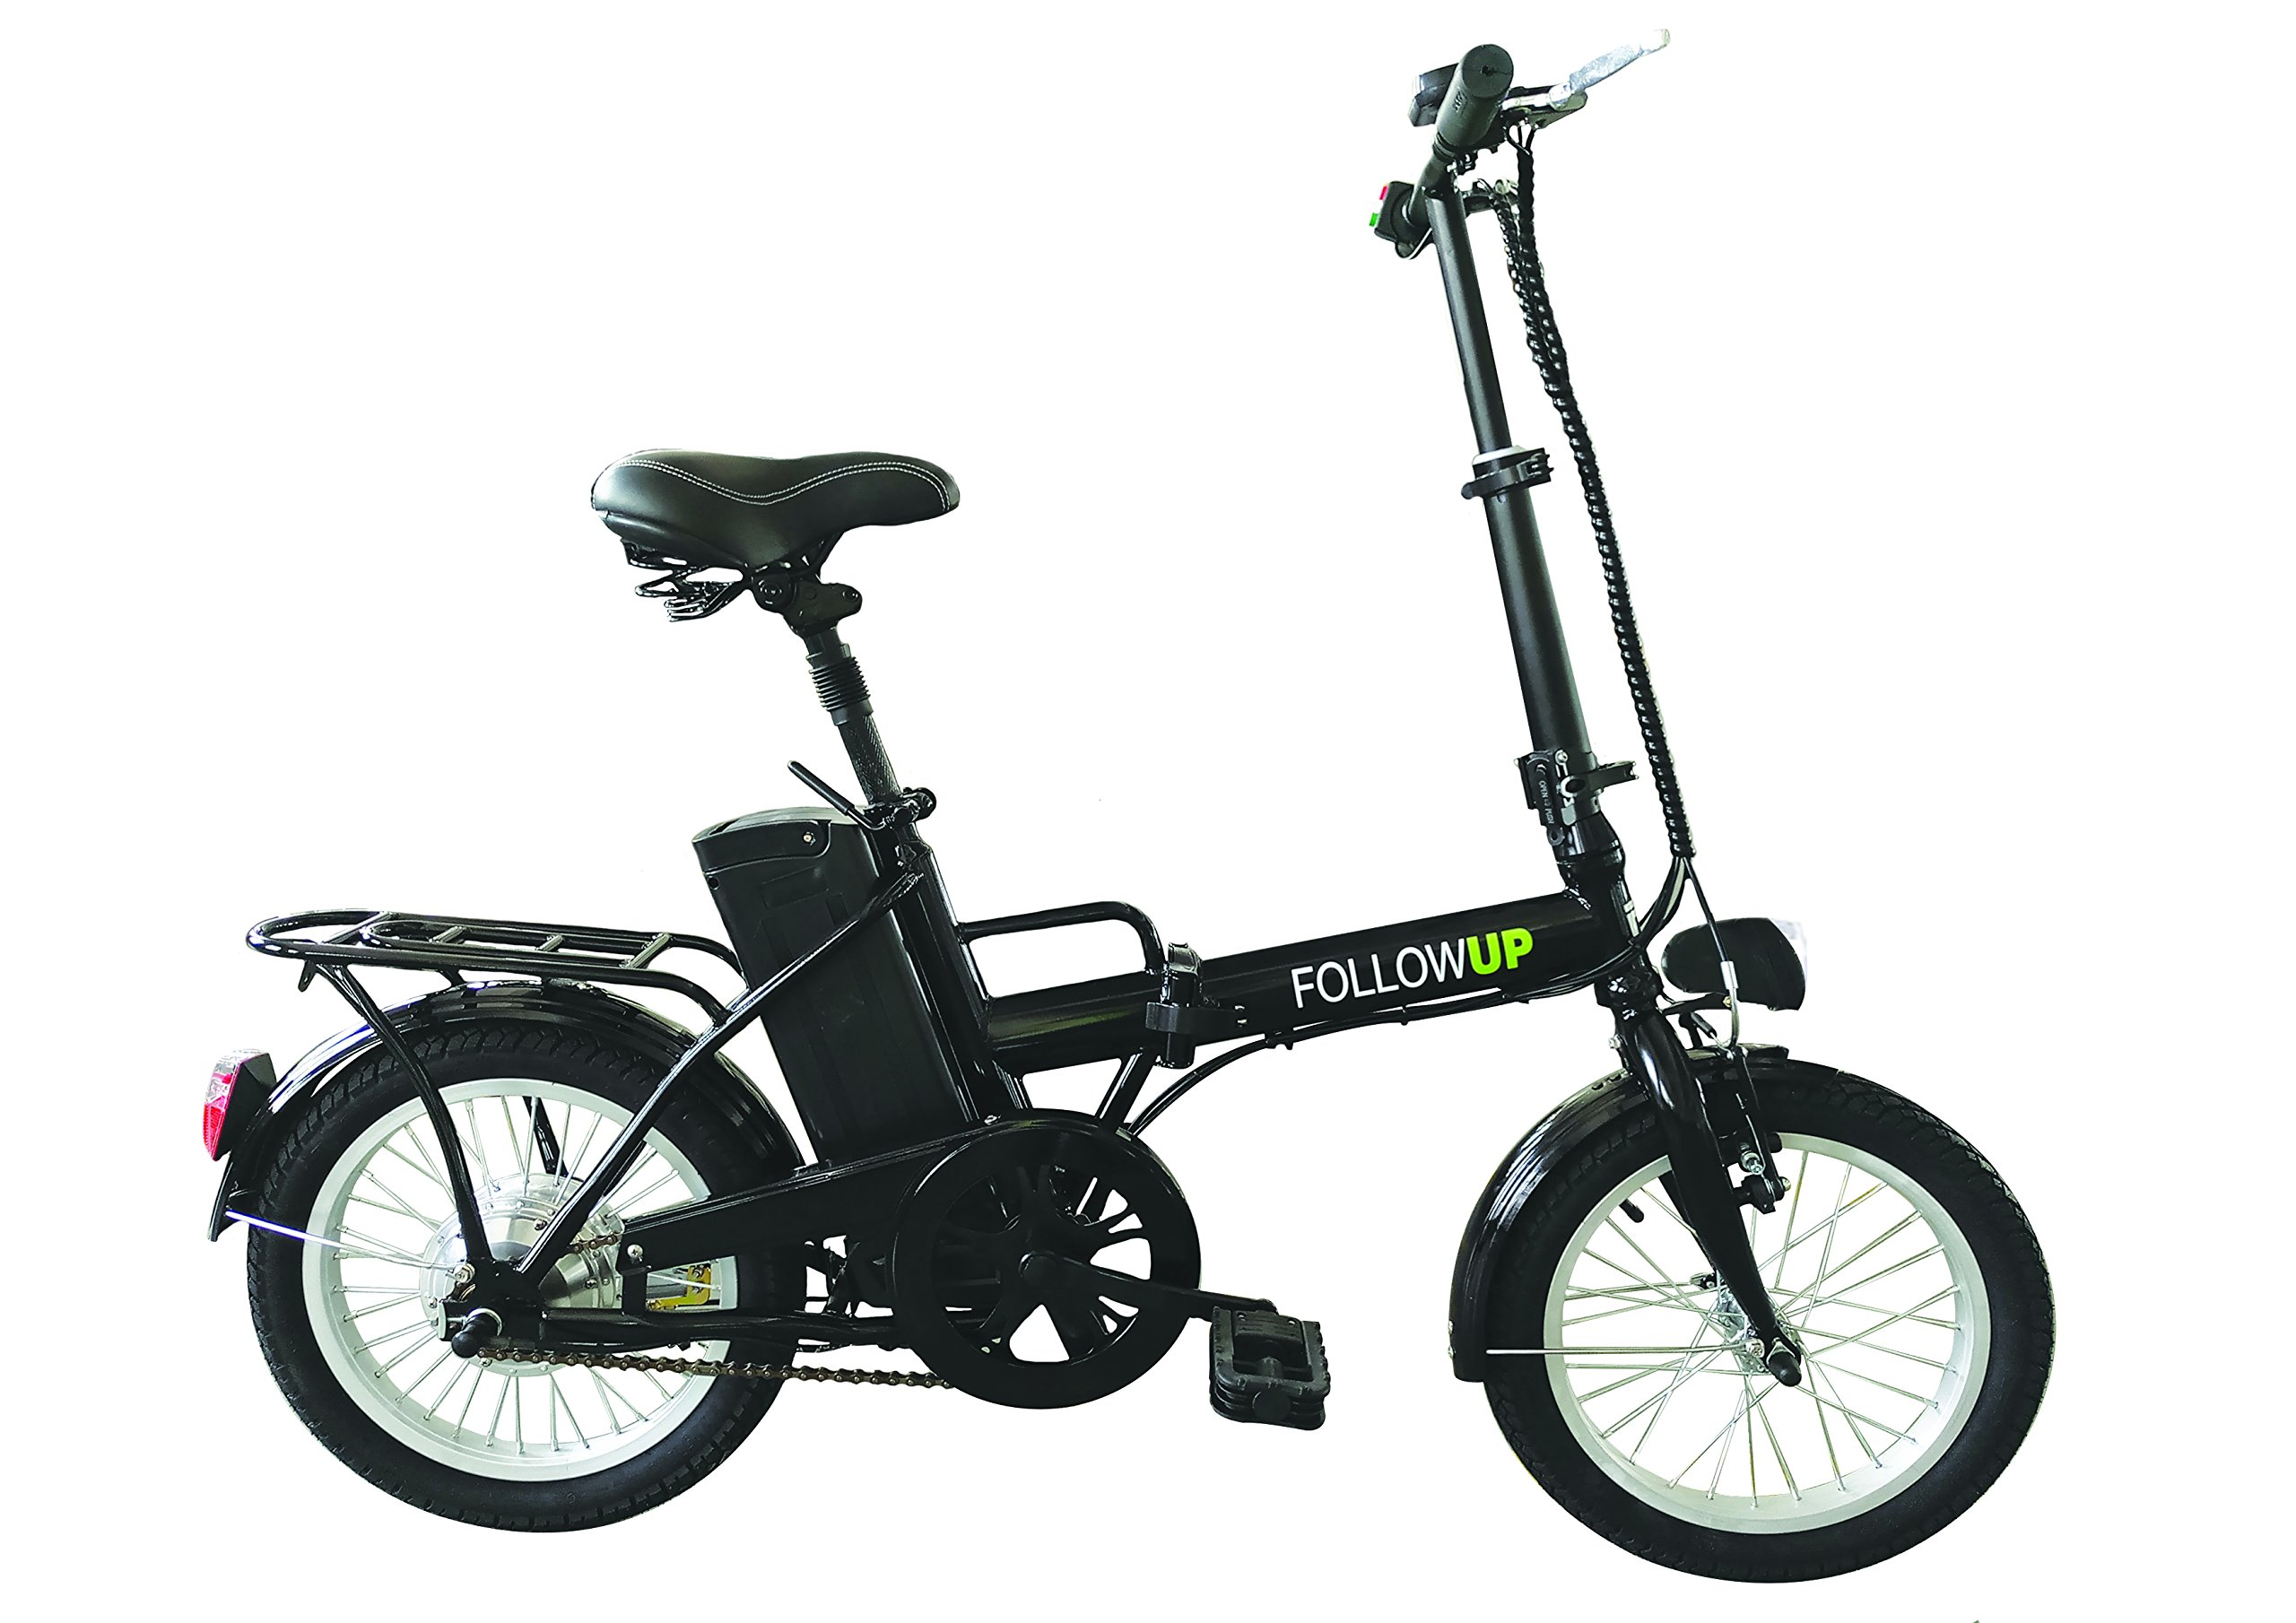 FOLLOW UP E05 Bicicleta eléctrica plegable para adulto, color negro product image